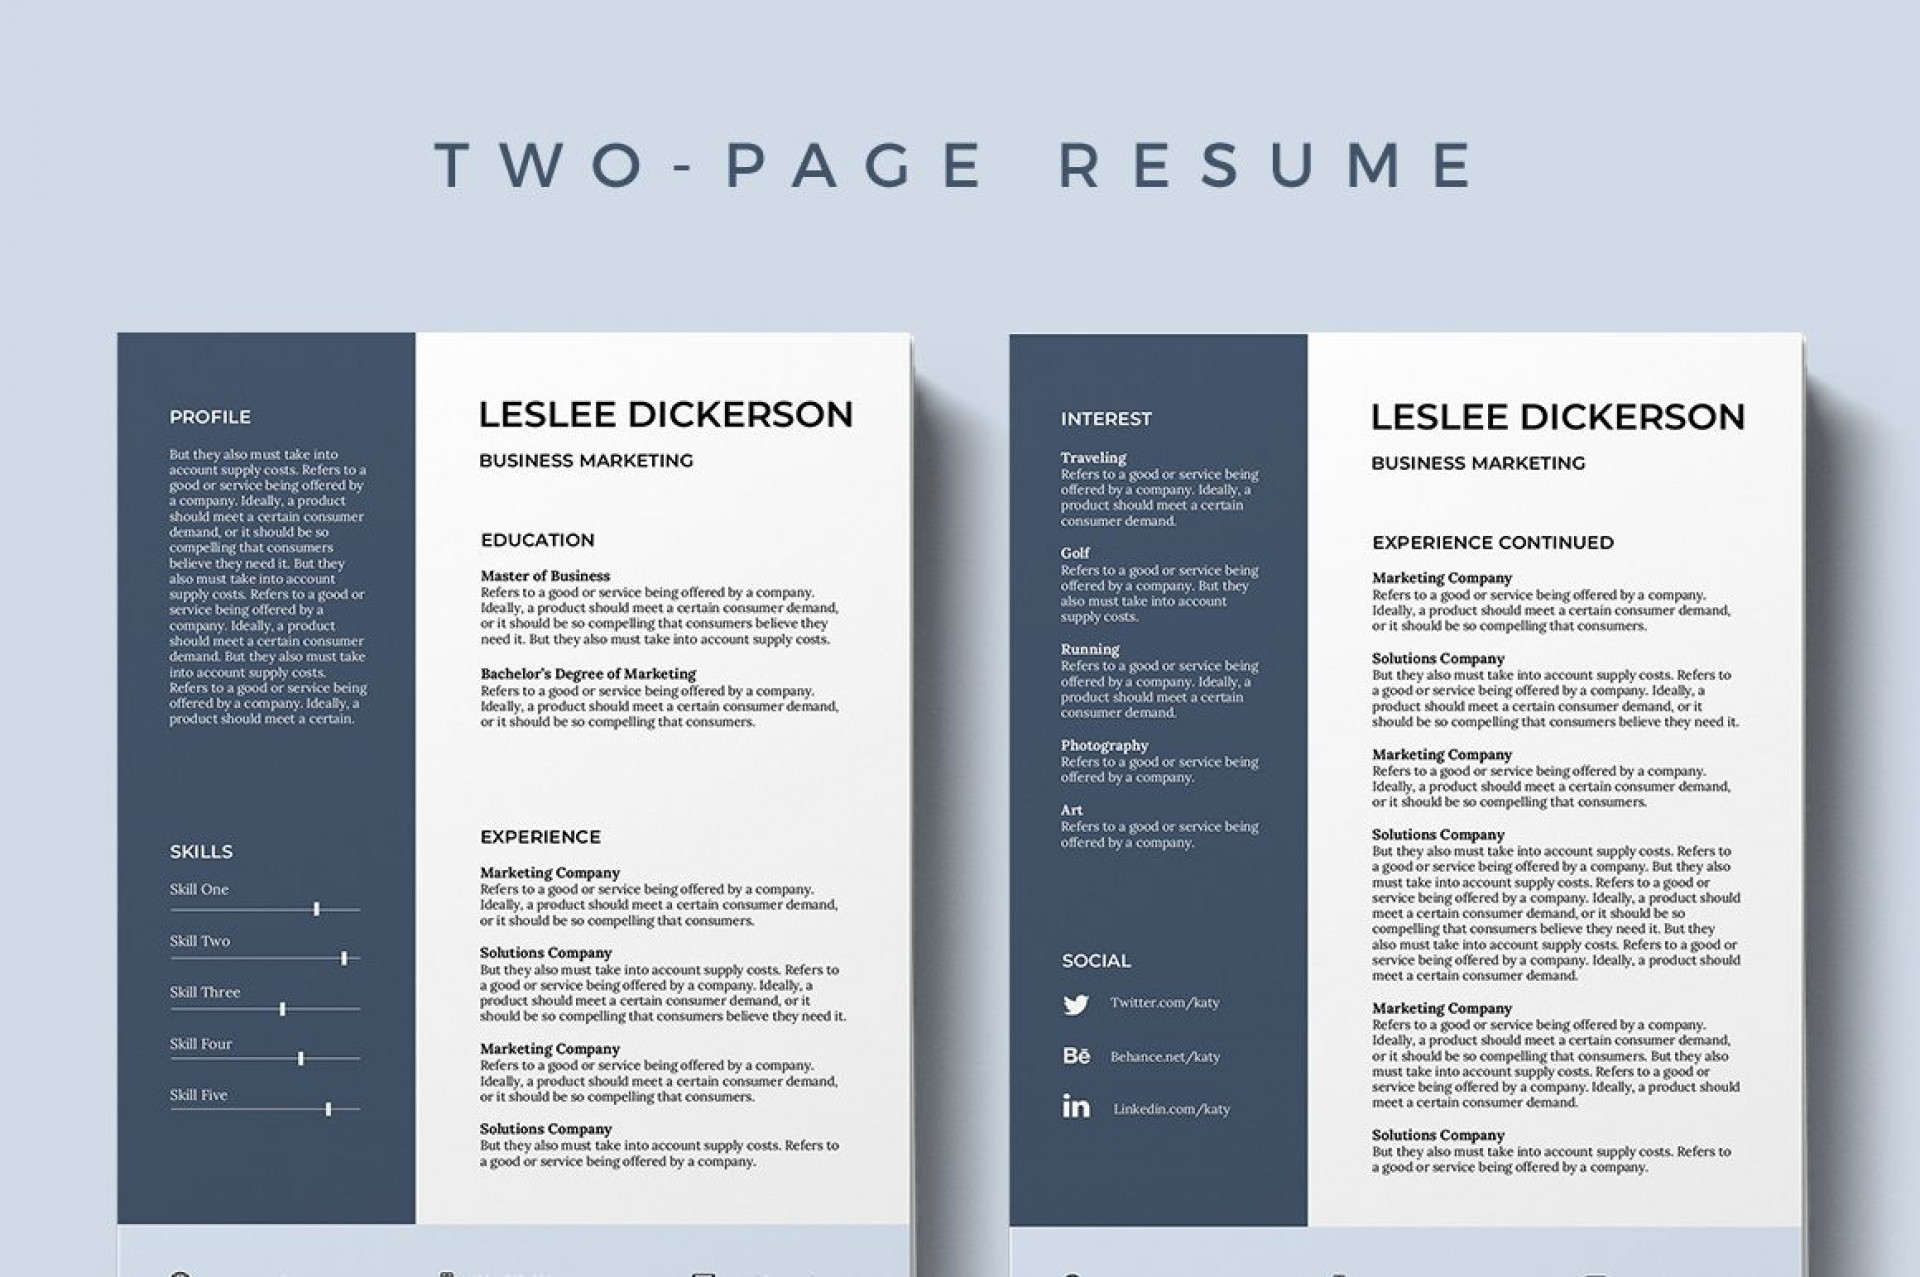 002 Fascinating Download Resume Template Free Highest Clarity  For Mac Best Creative Professional Microsoft Word1920